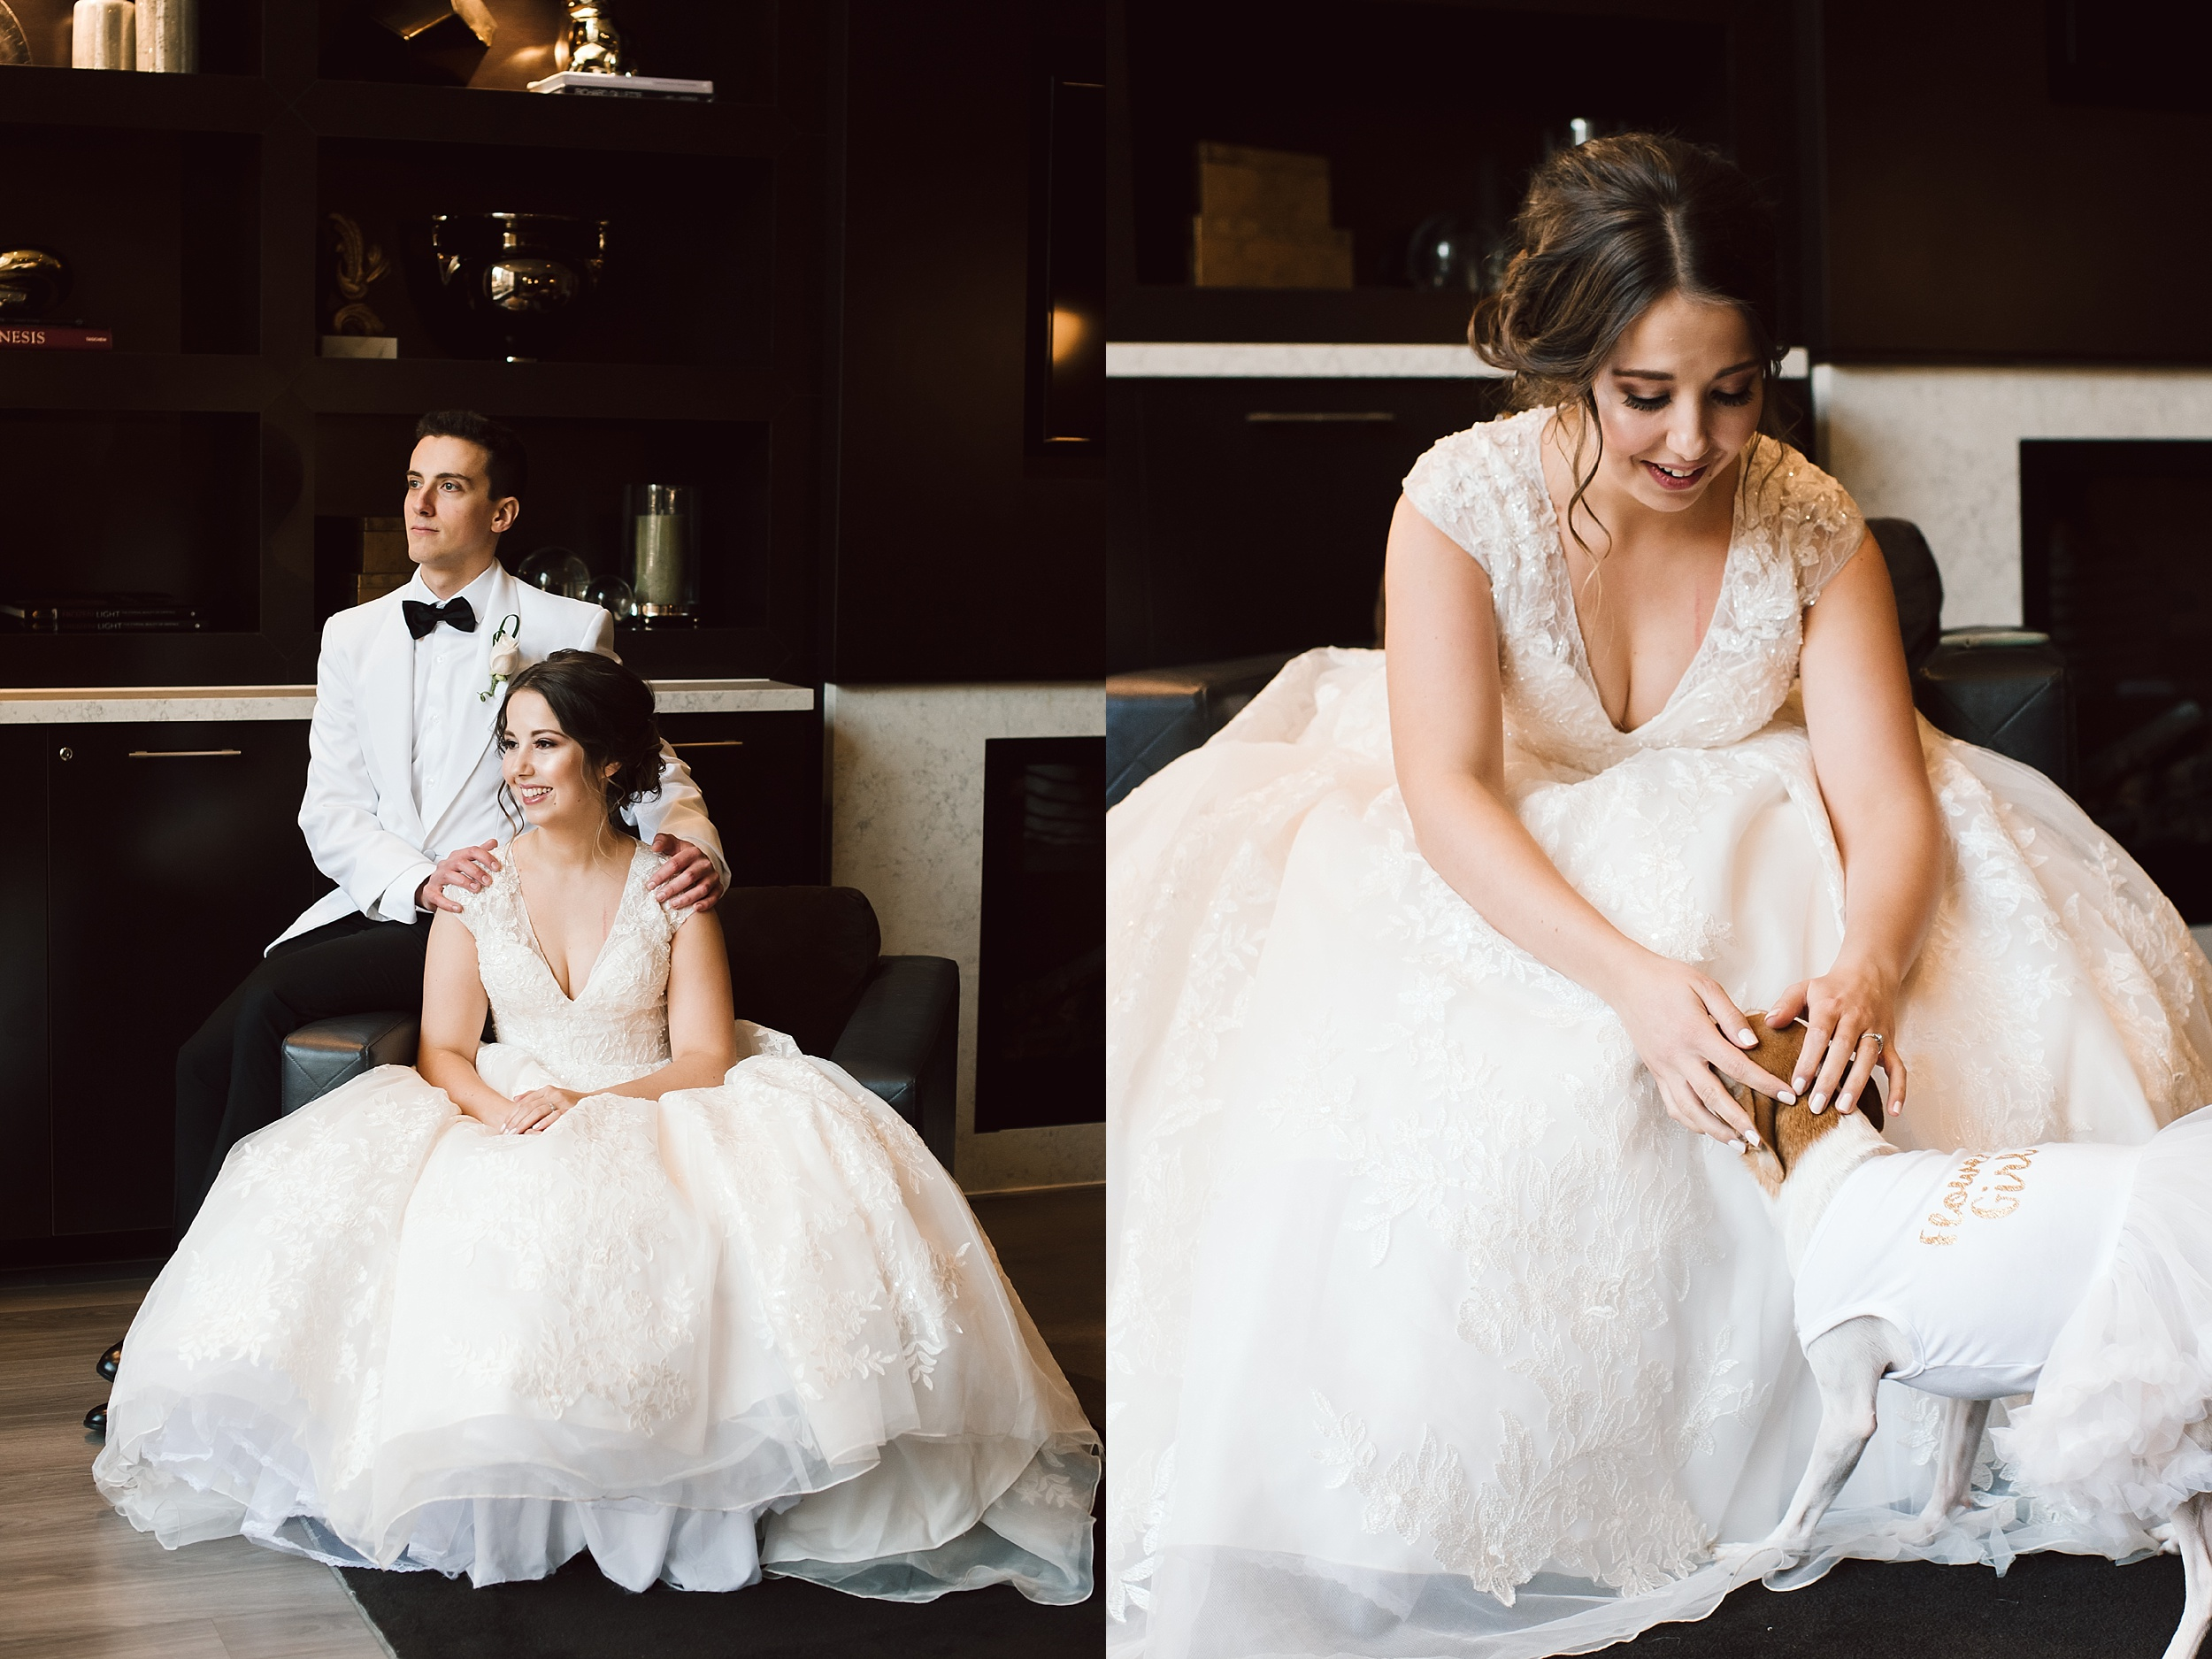 Jam_Factory_Wedding_Toronto_Winter_Wedding_Photographer_0014.jpg